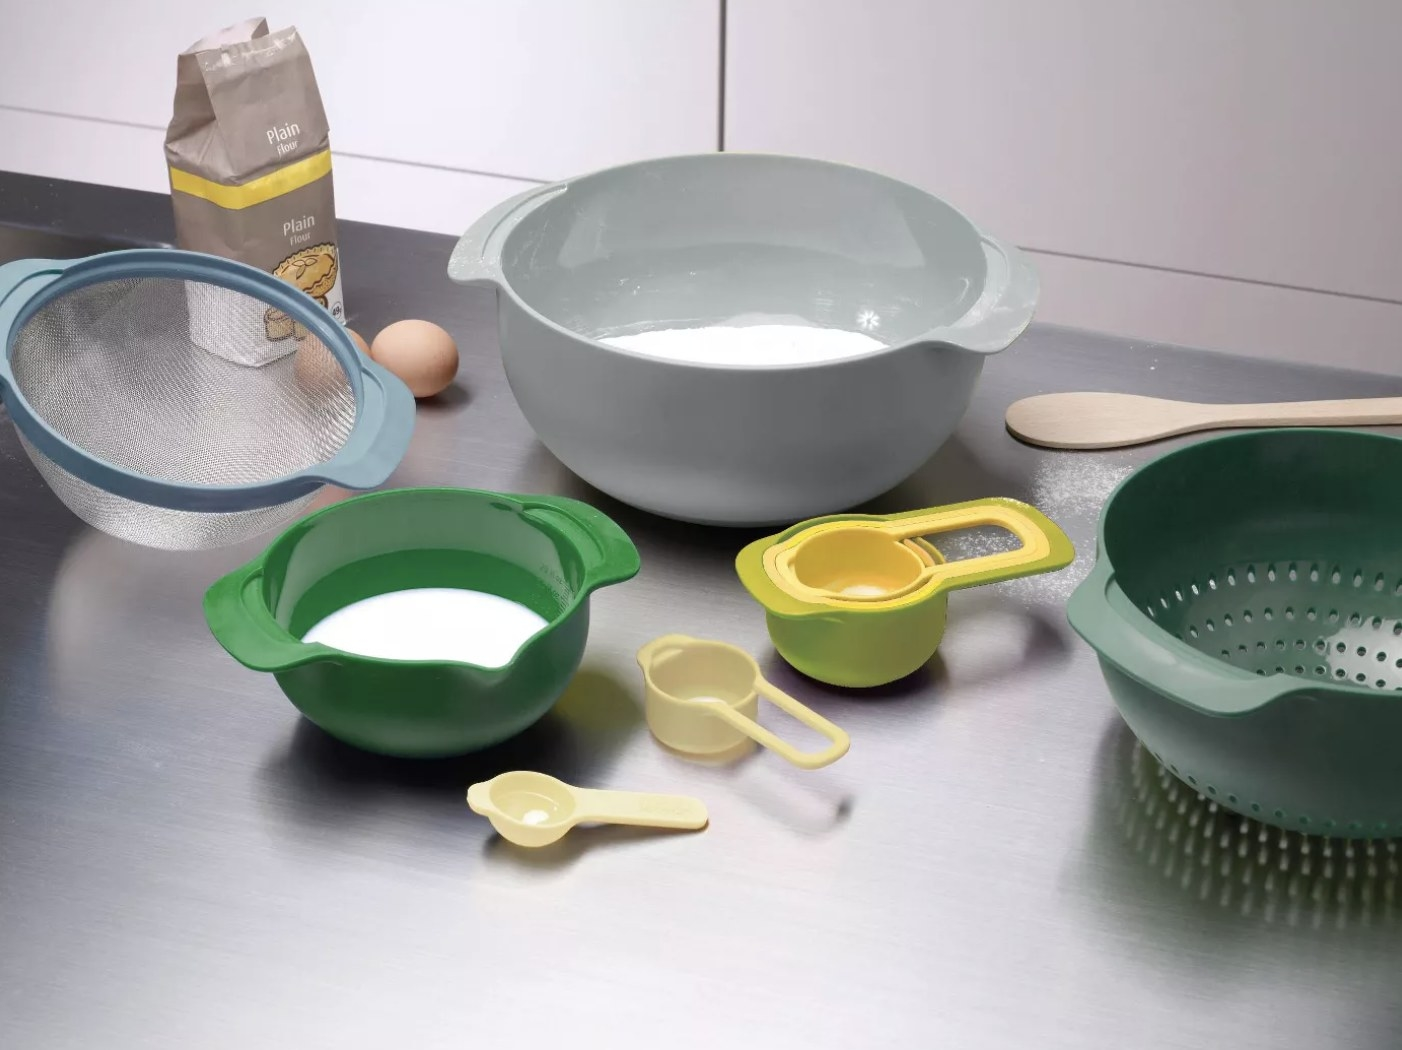 The 9-piece nesting bowl set in a kitchen